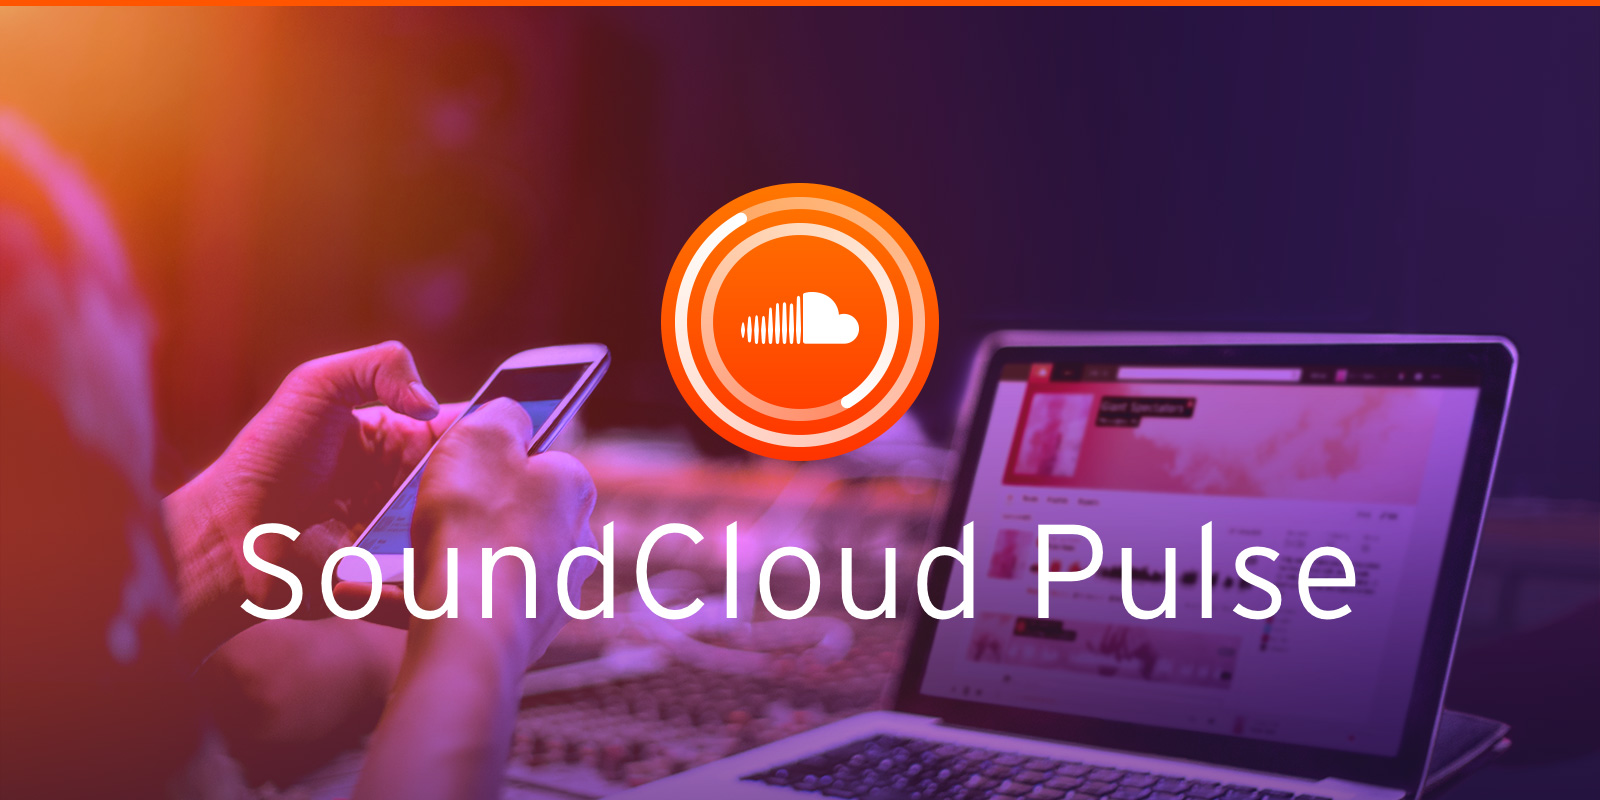 SoundCloud Pulse